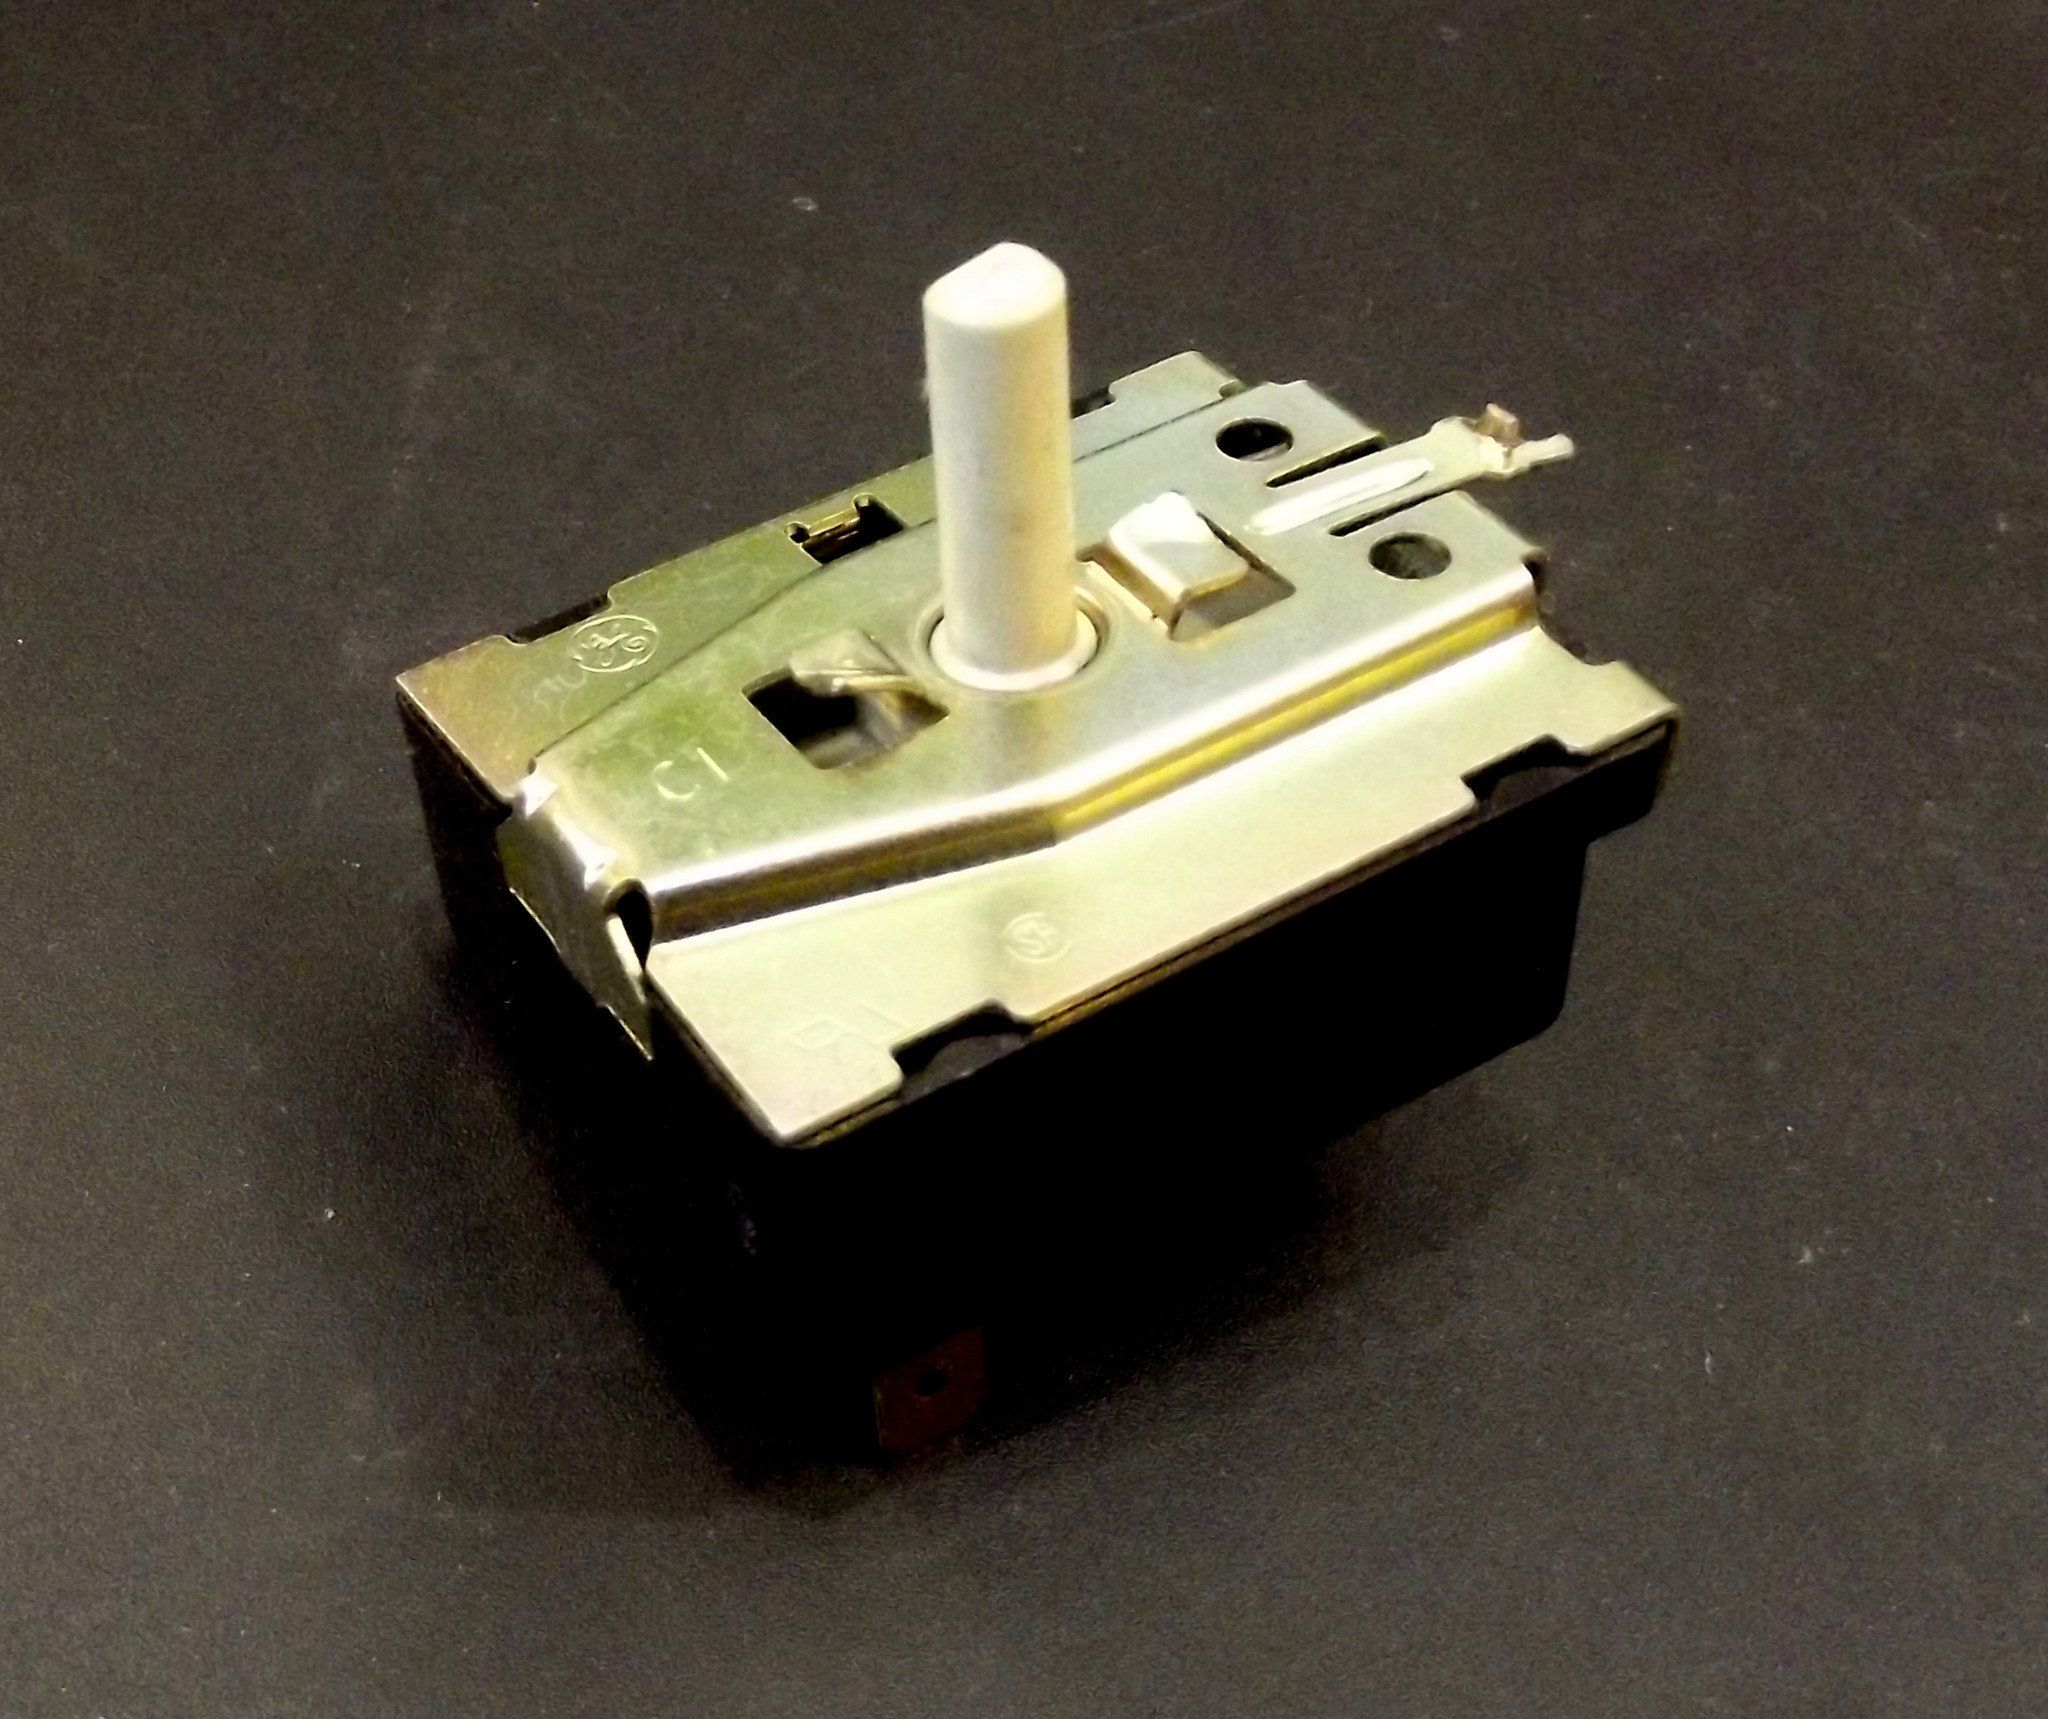 We04m242 572d4375p009 Ge Dryer Rotary Temperature Switch Appliance Parts Rotary Hotpoint